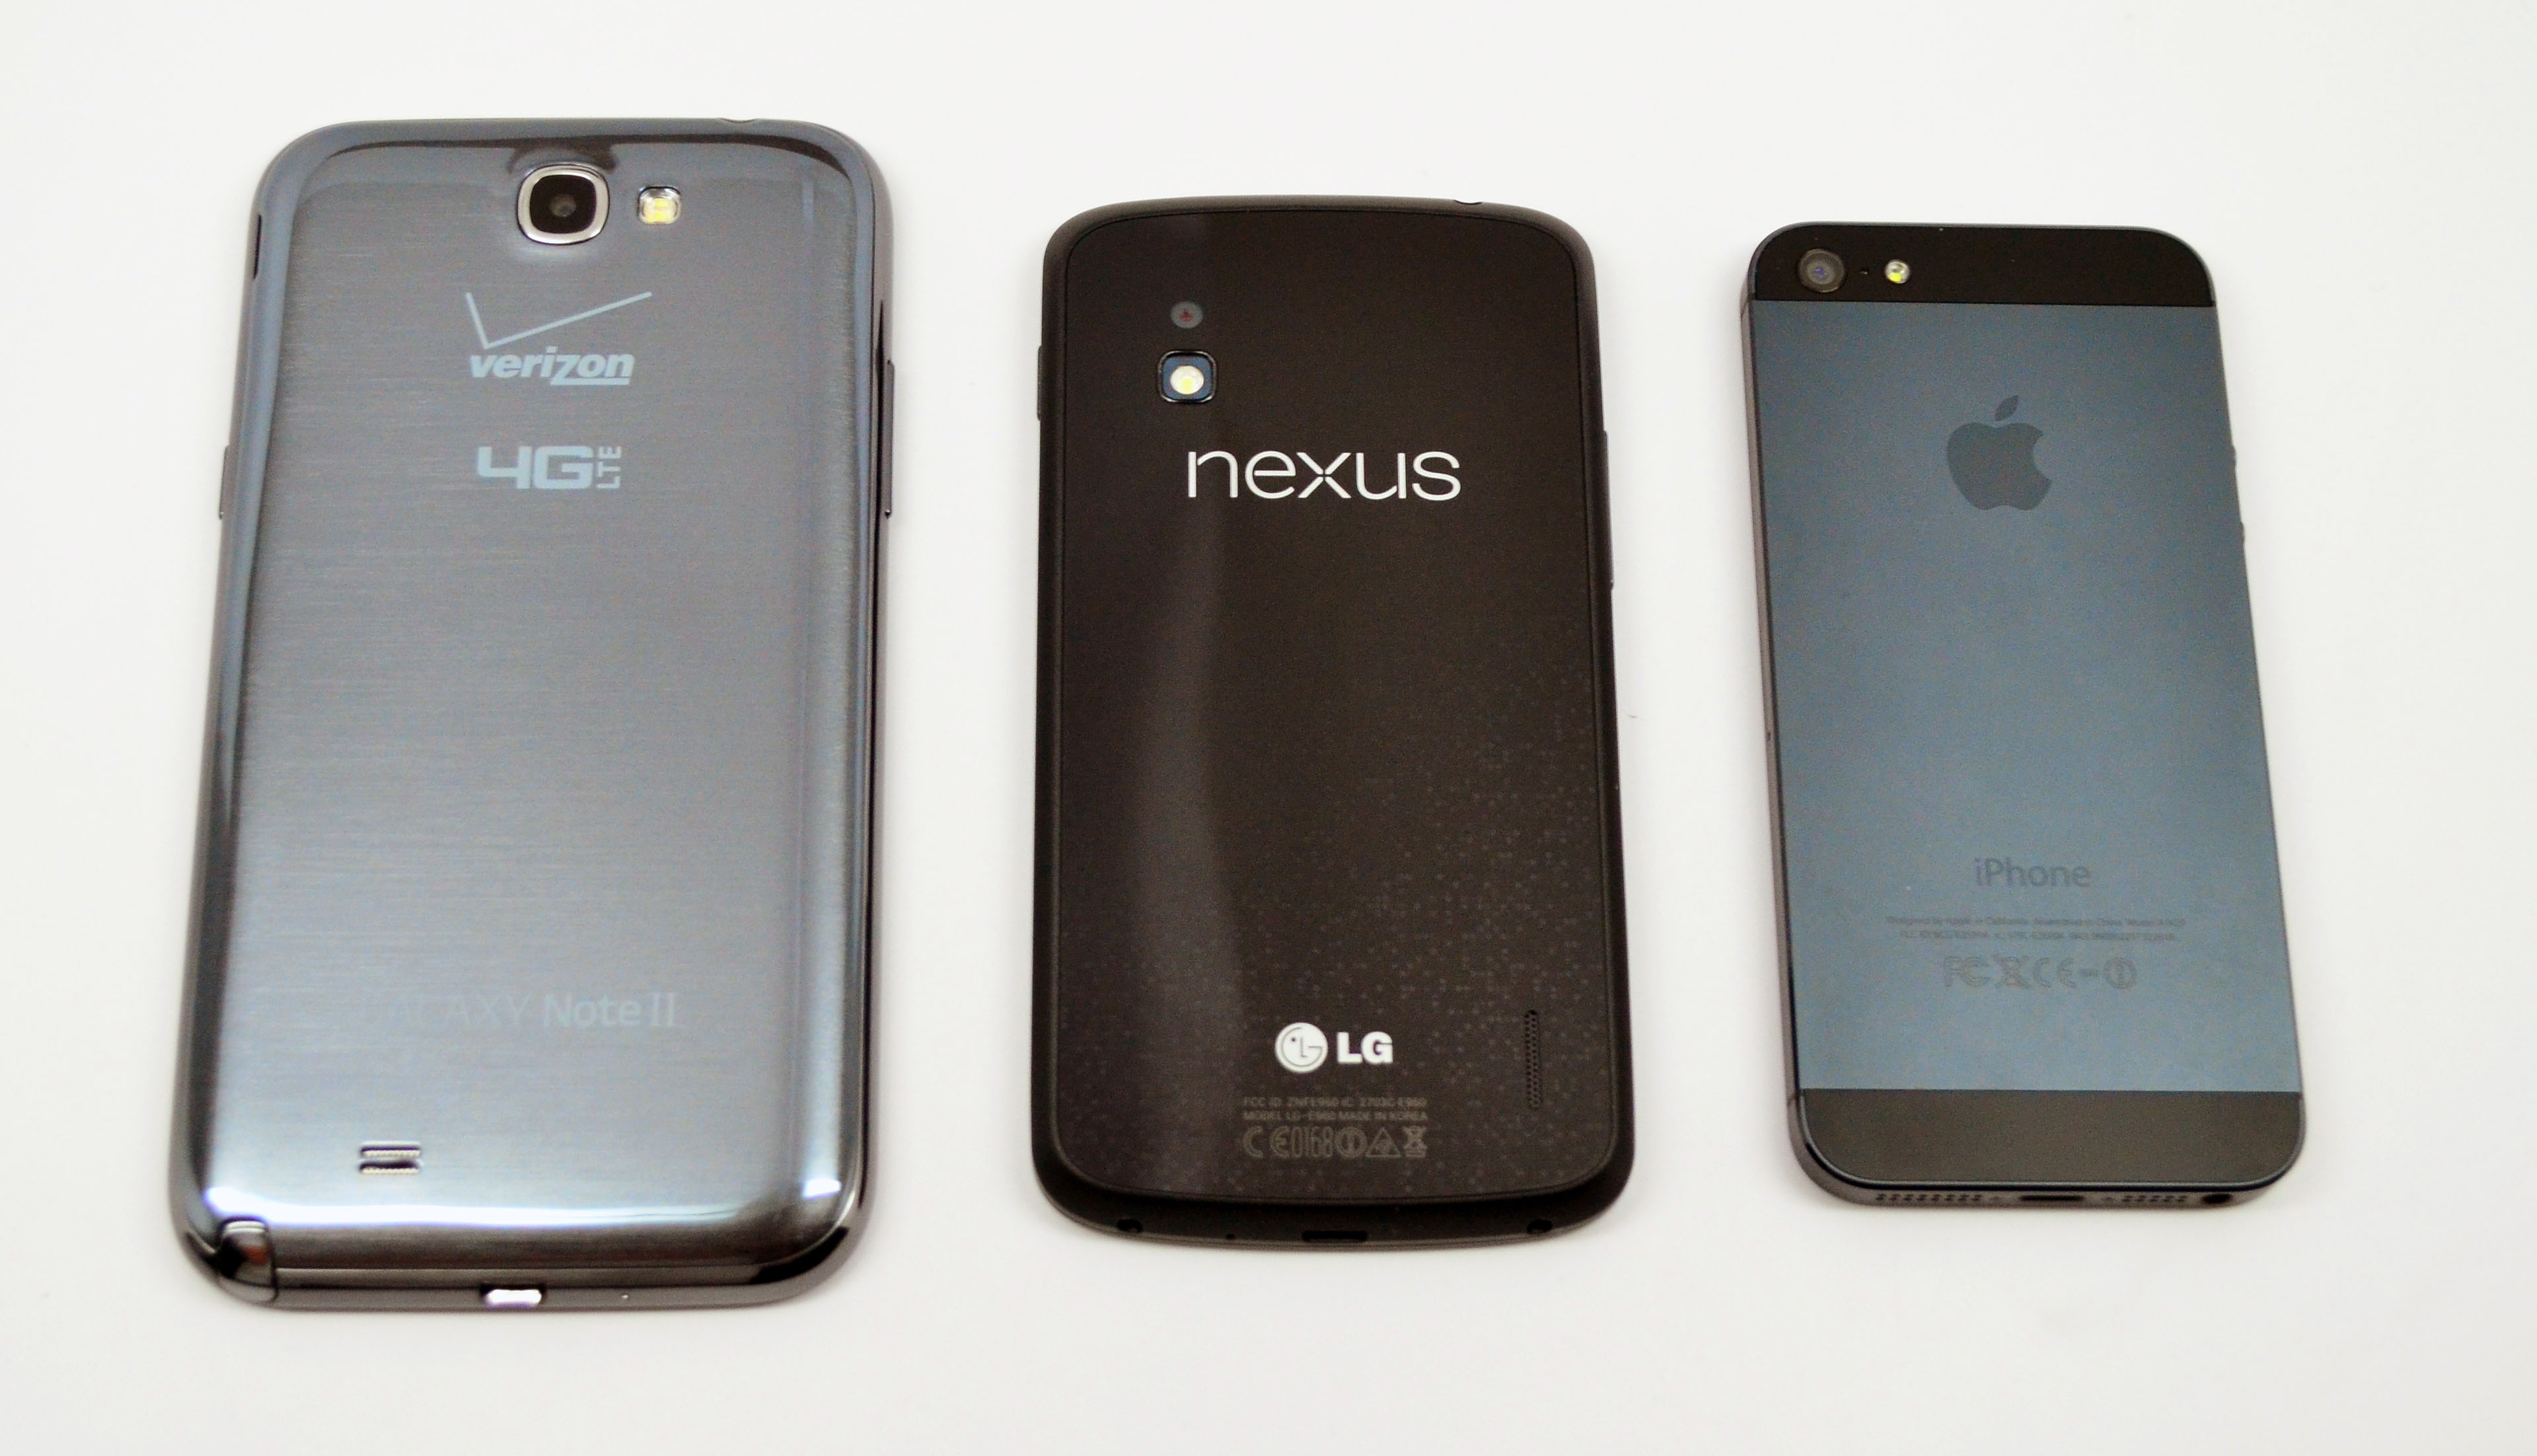 iphone 5 vs nexus 5 Compare the nexus 5 vs iphone 5, read our comparison based on cell network speed, screen resolution, internal processor speed and screen pixel density, and more.